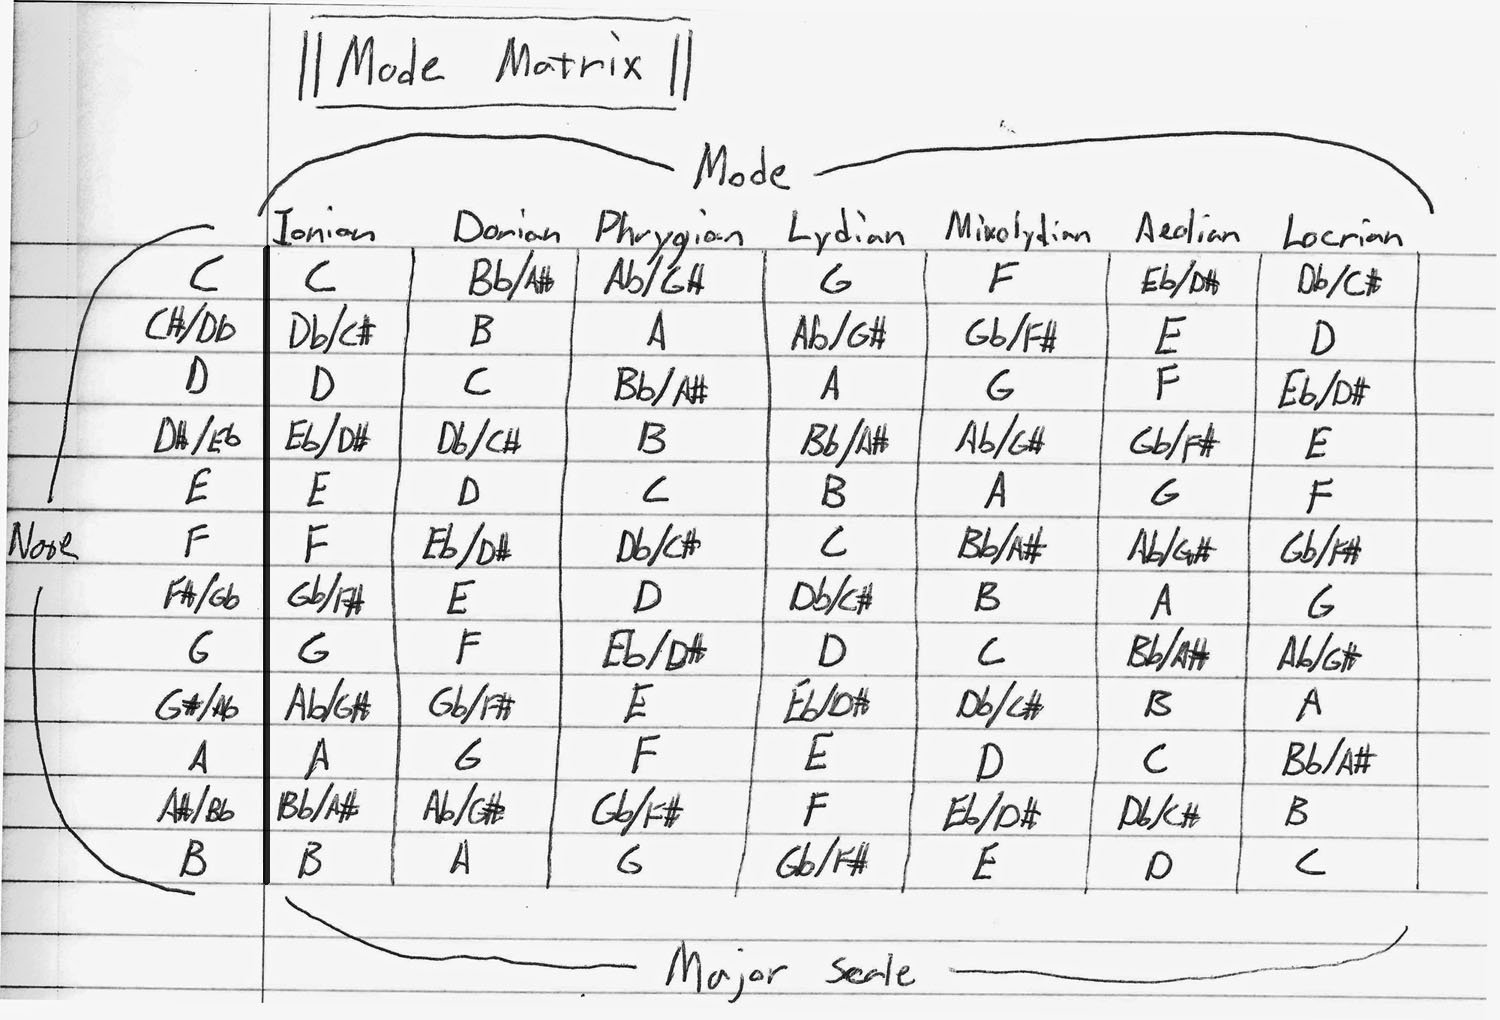 Major Scale Chart